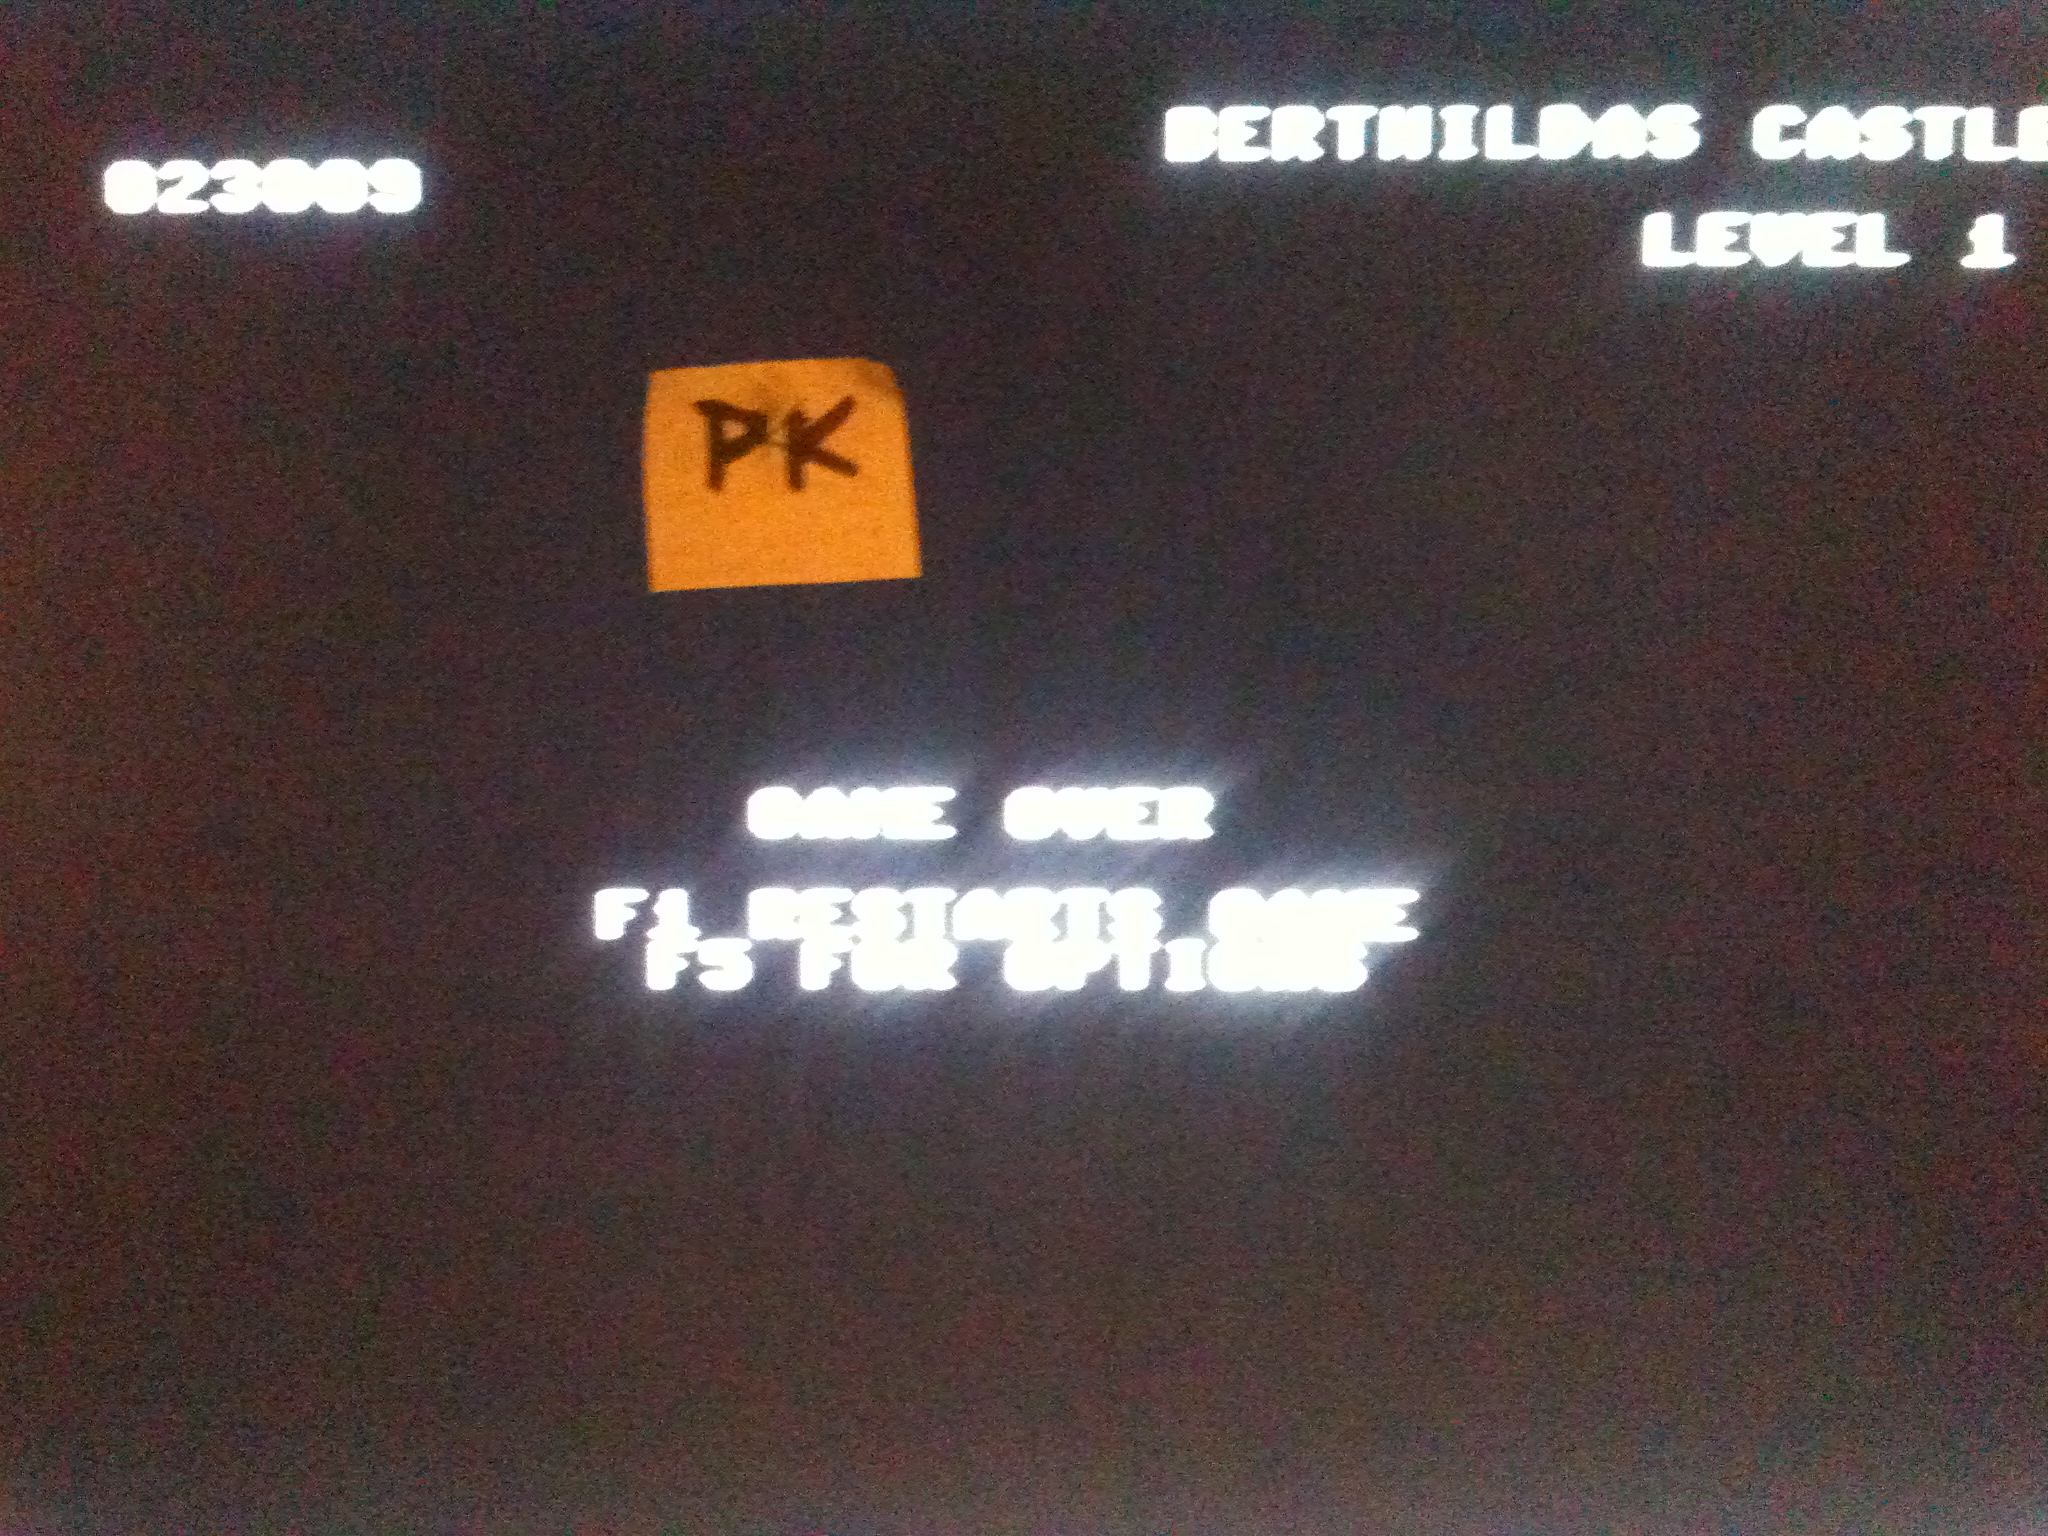 kernzy: Crystal Castles [US Gold/Atari] [Medium] (Commodore 64) 23,009 points on 2015-12-13 15:18:47